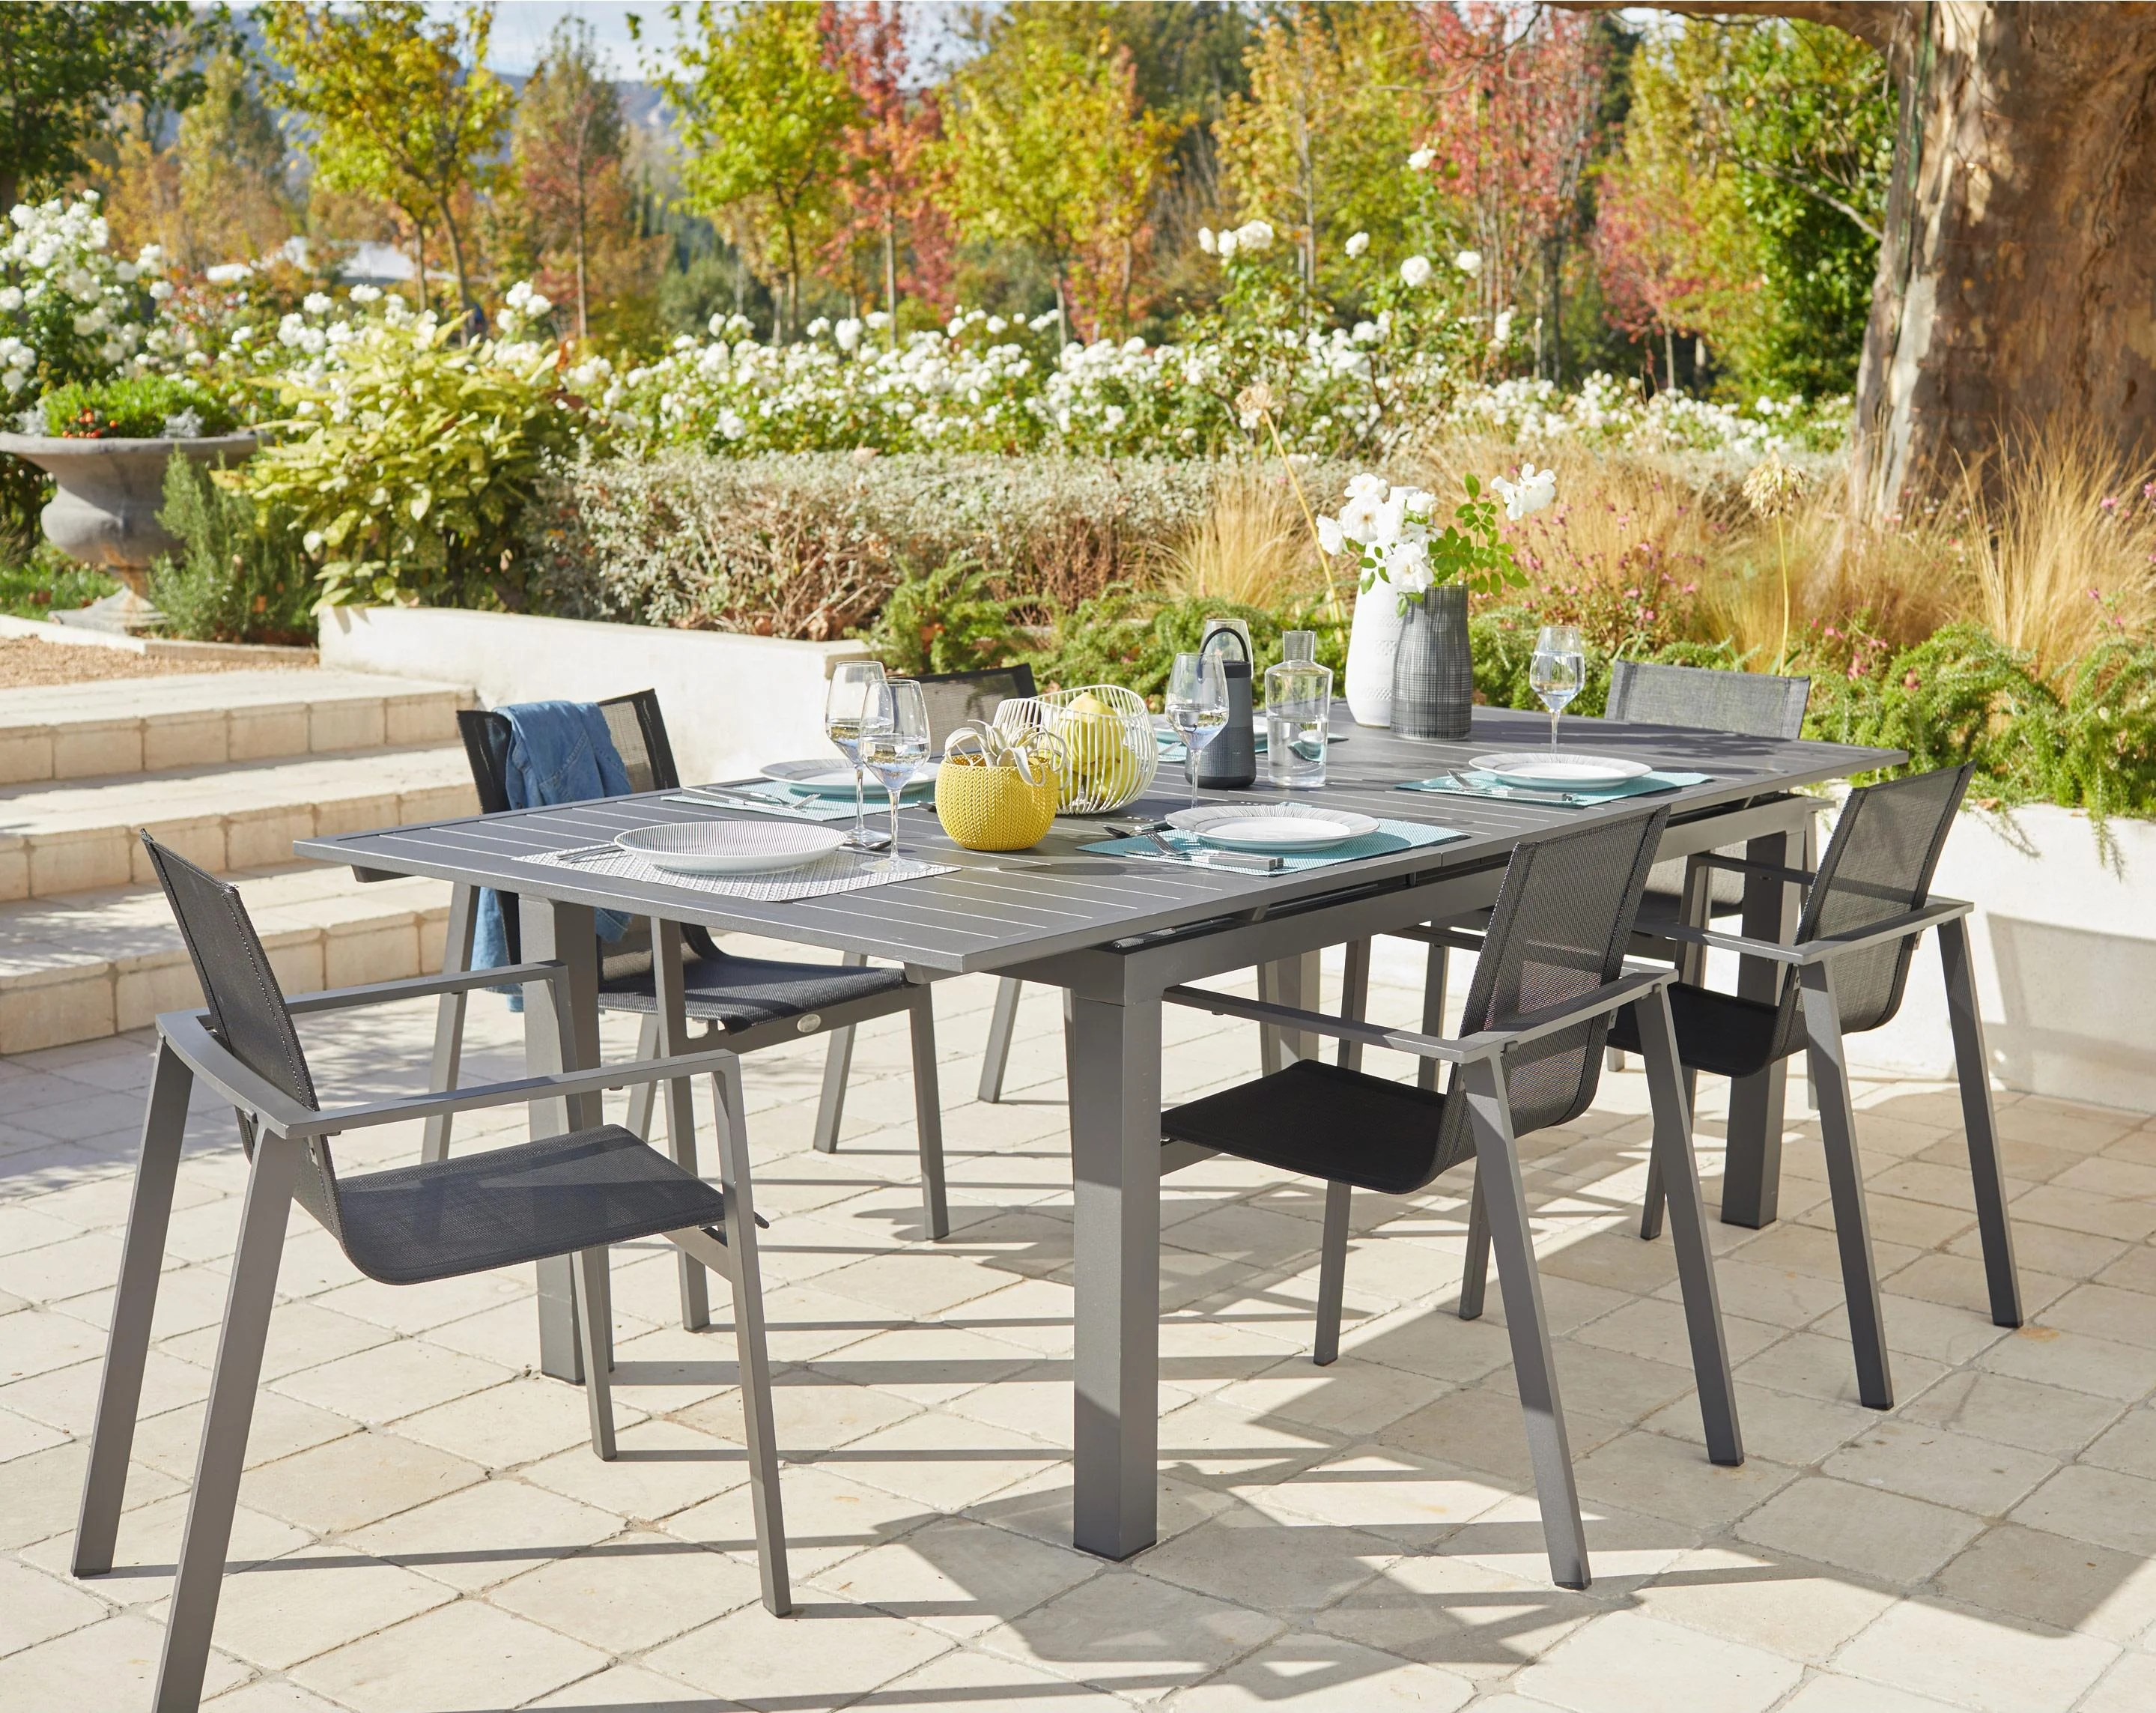 Table Jardin Salon De Jardin Miami Aluminium Gris Anthracite 6 Personnes